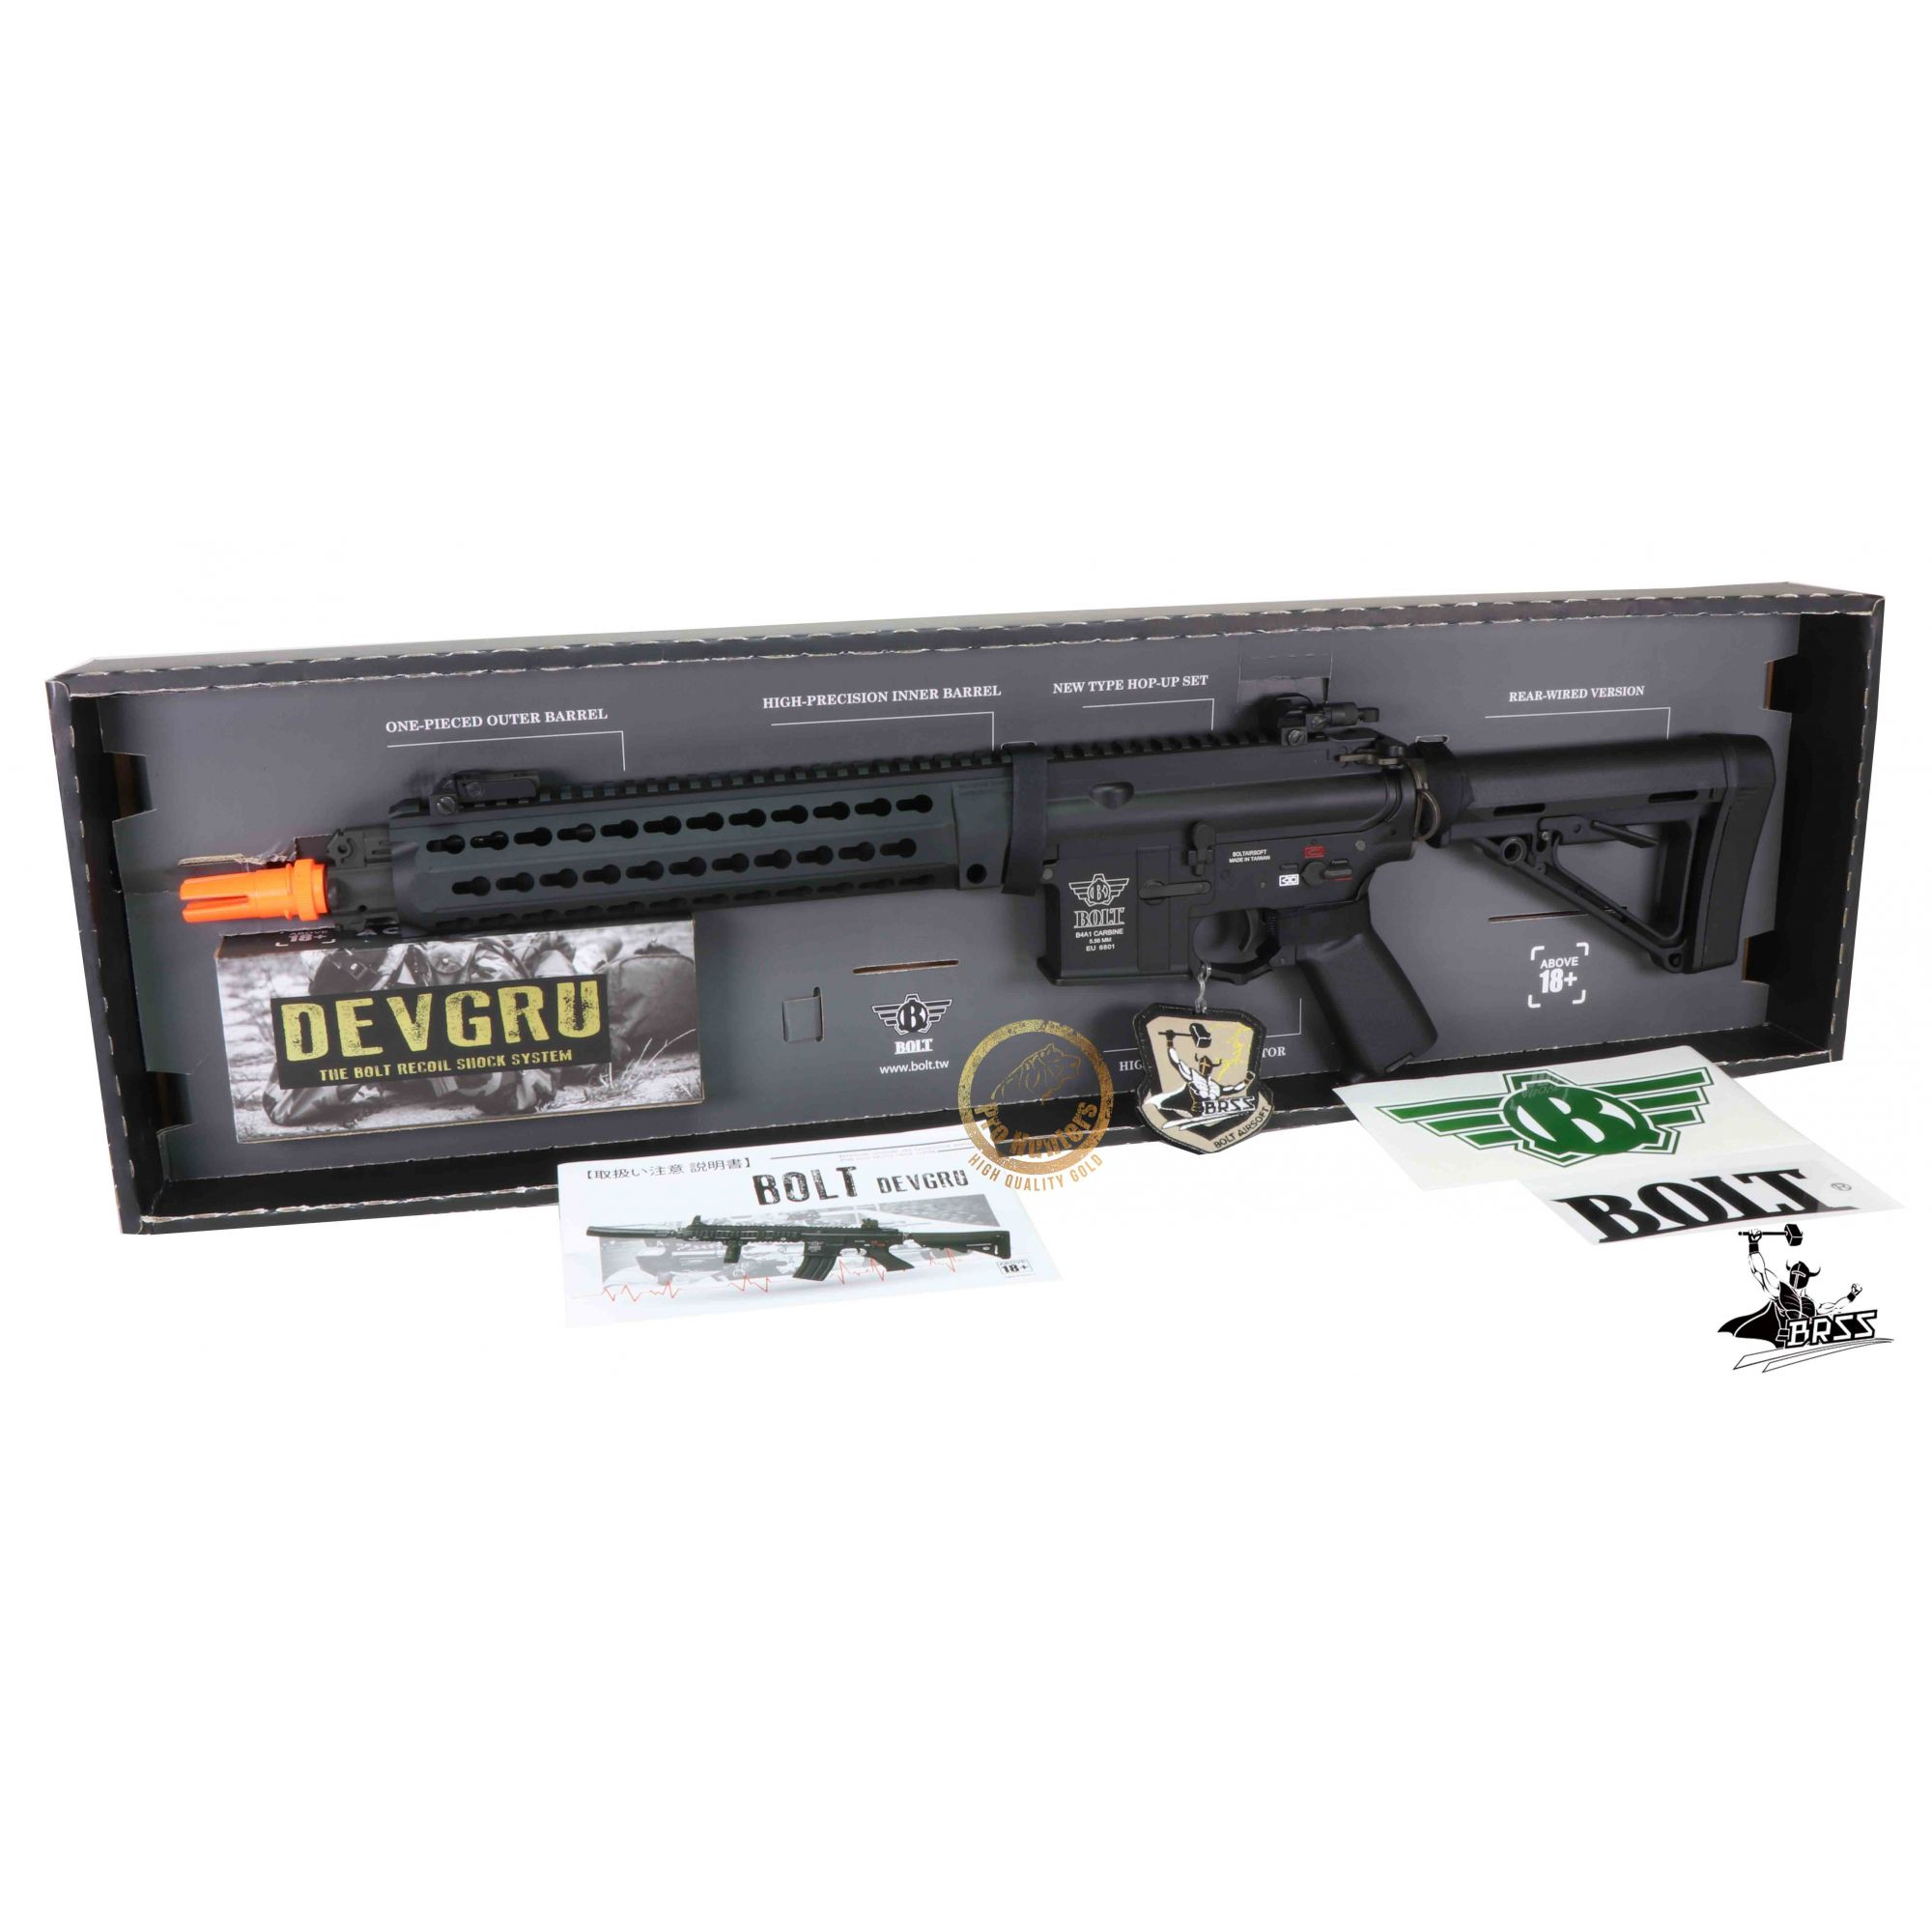 Rifle Airsoft M4 BOLT B4 DEVGRU K12 - Black Full Metal - Blowback & Recoil System